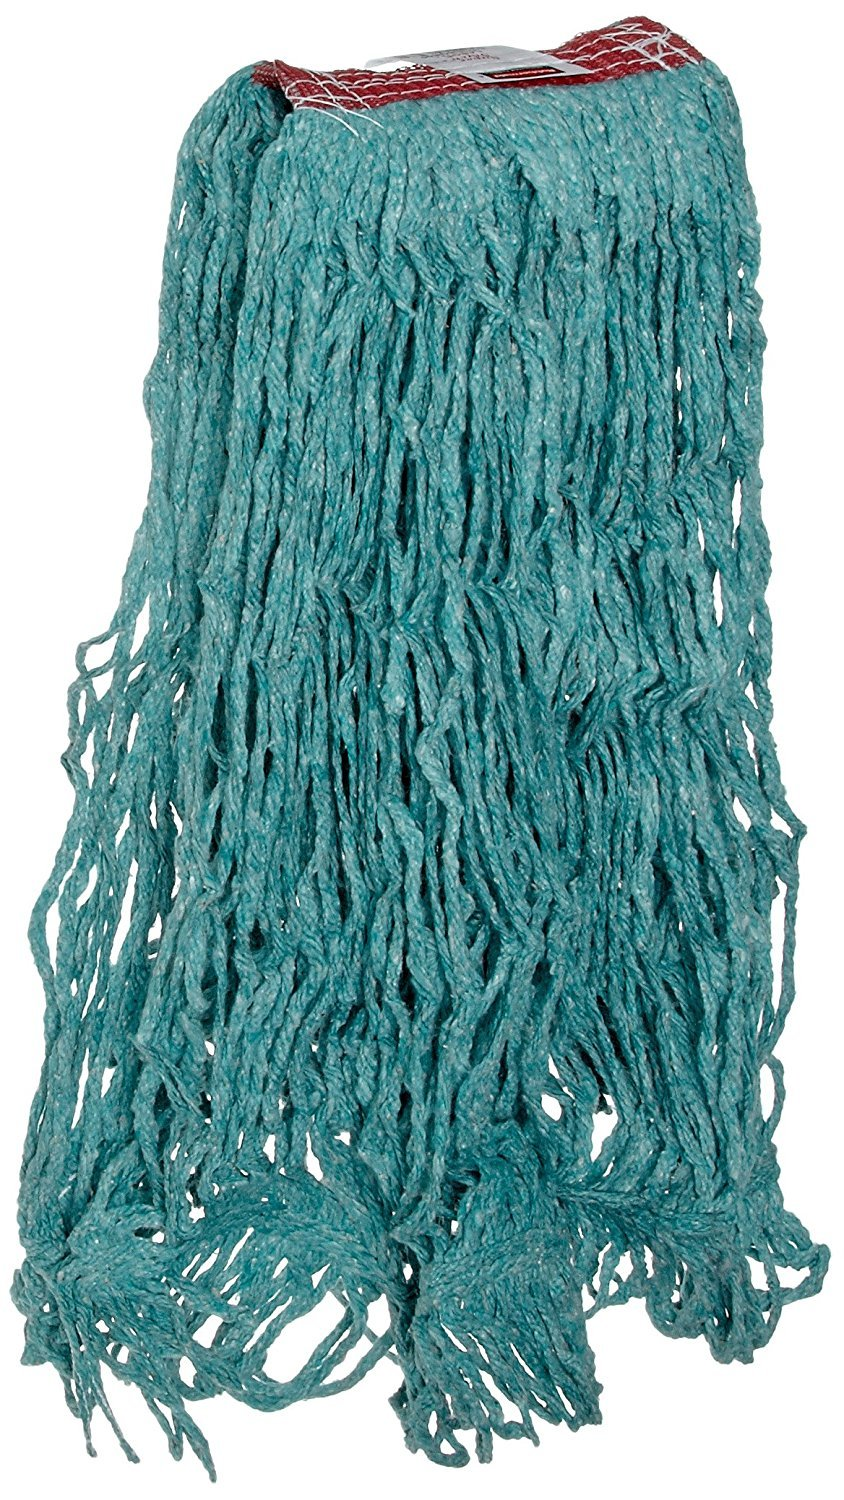 Rubbermaid Commercial Products FGD21306GR00 Super Stitch Blend Mop, Large, 1'' Green Headband (Pack of 6)